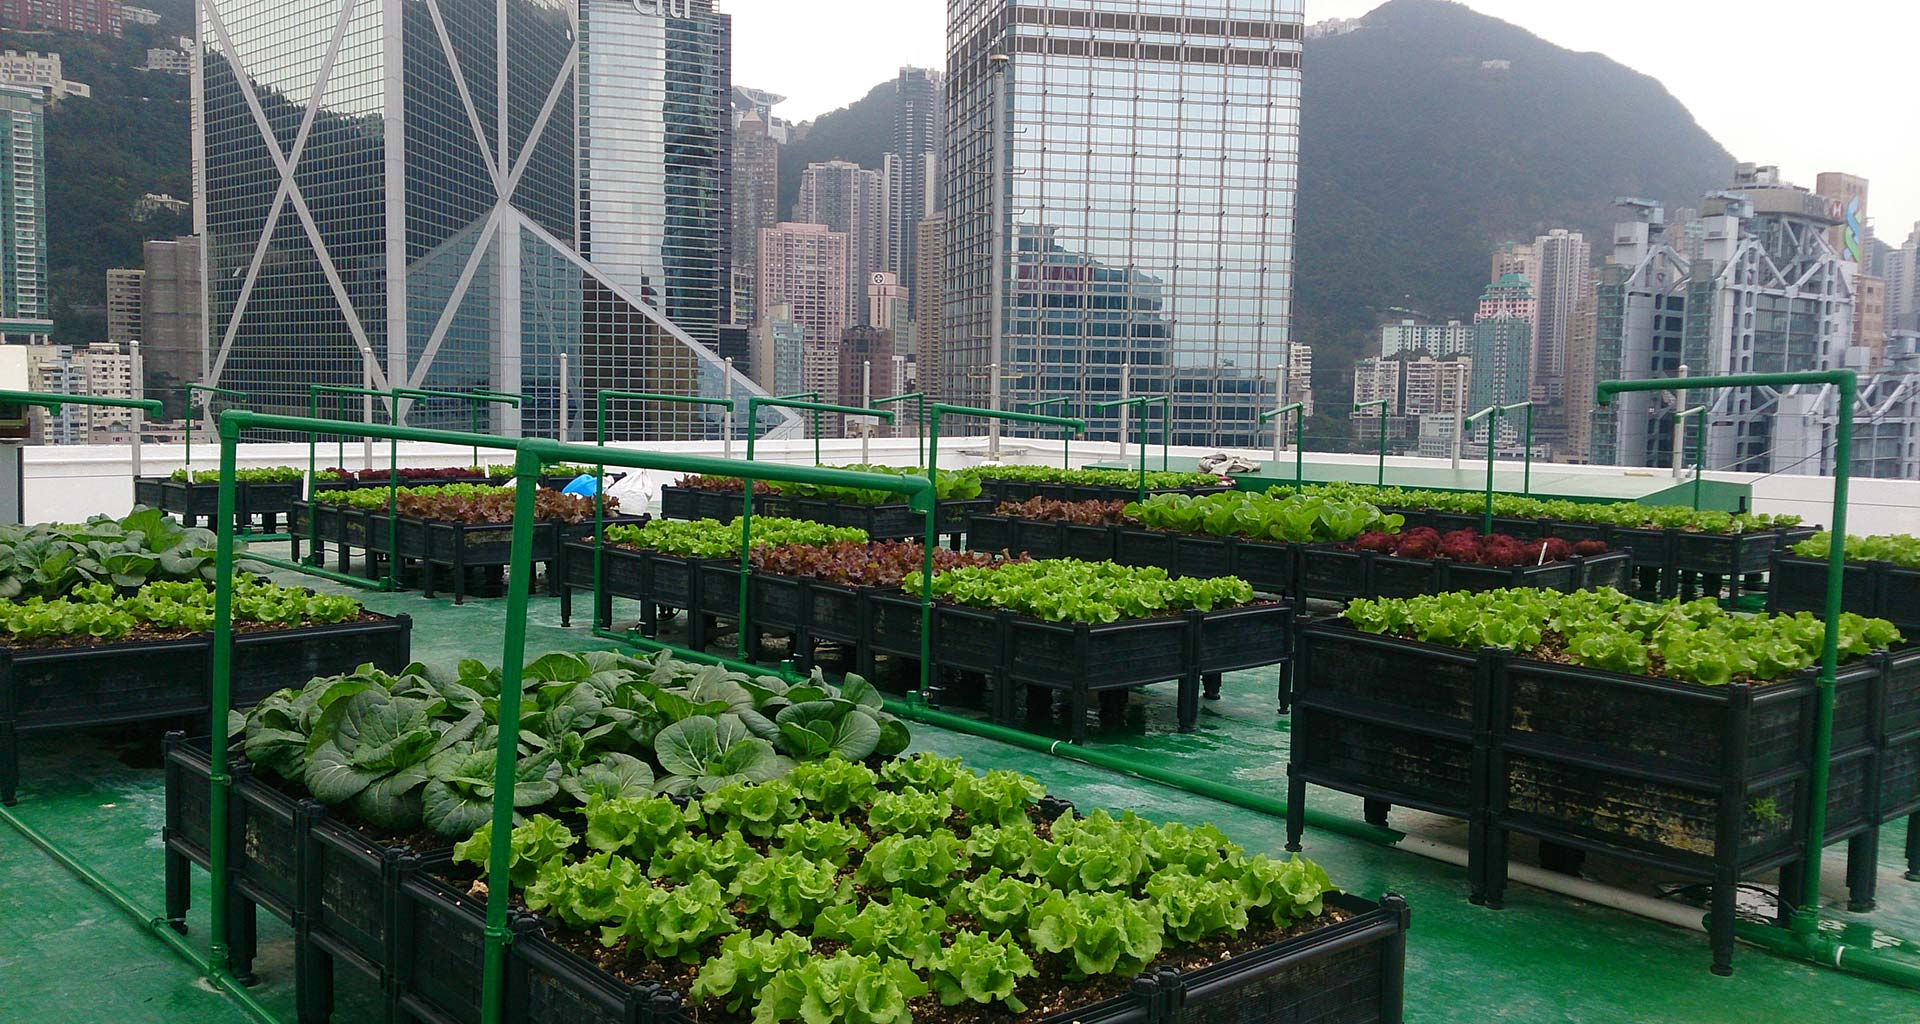 Why Use RIOCOCO Products For Rooftop Gardening As Growing Medium?